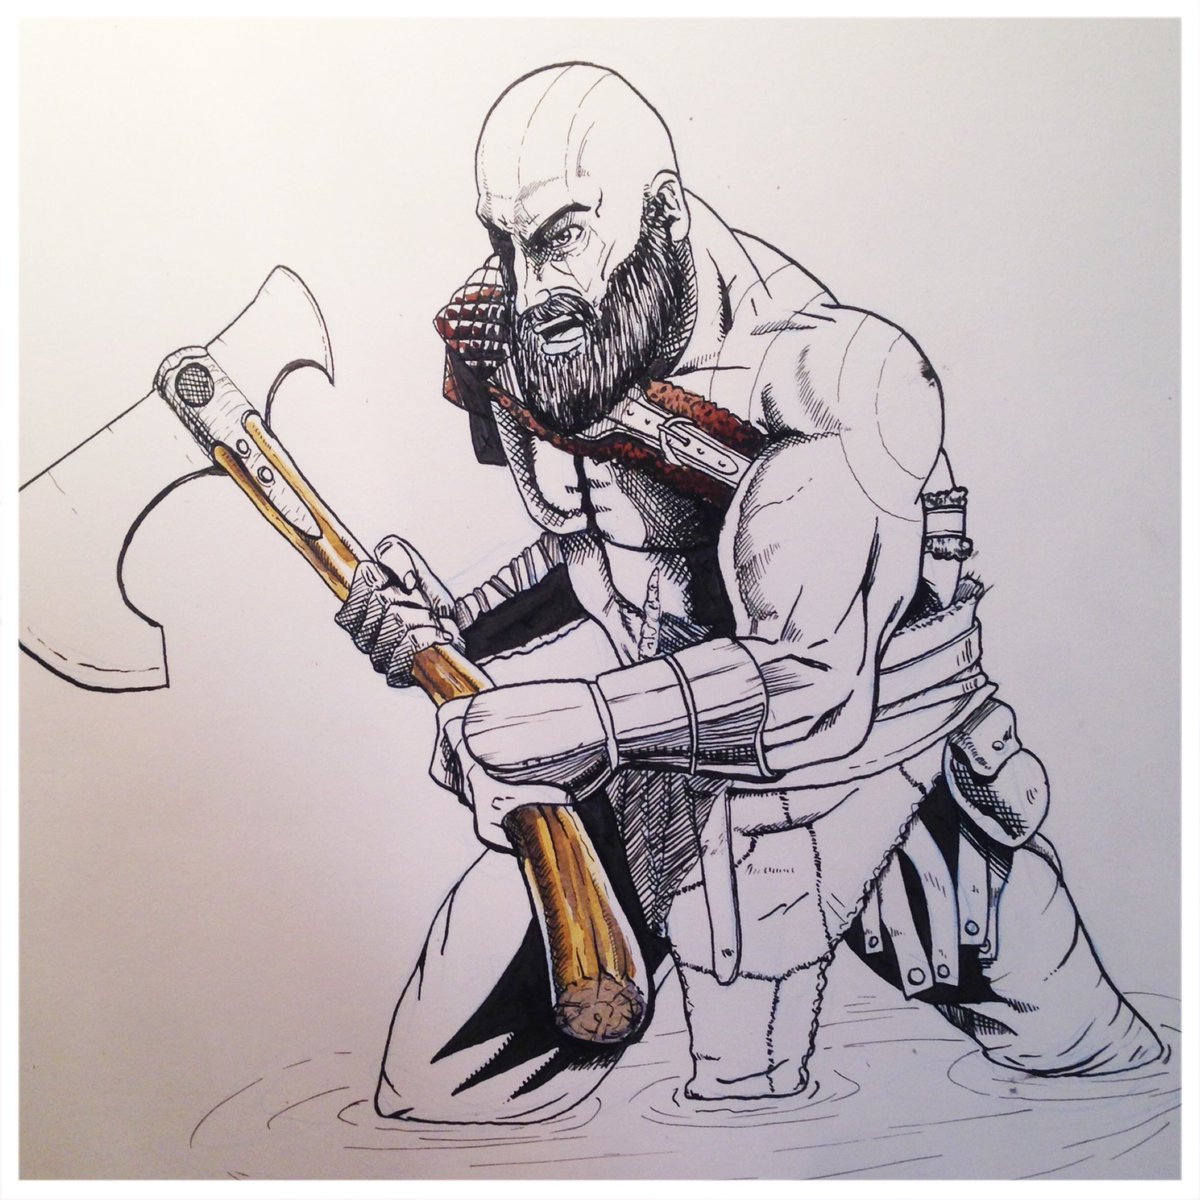 Robert Volkmer On Twitter Inks Of The Kratos Drawing I Did